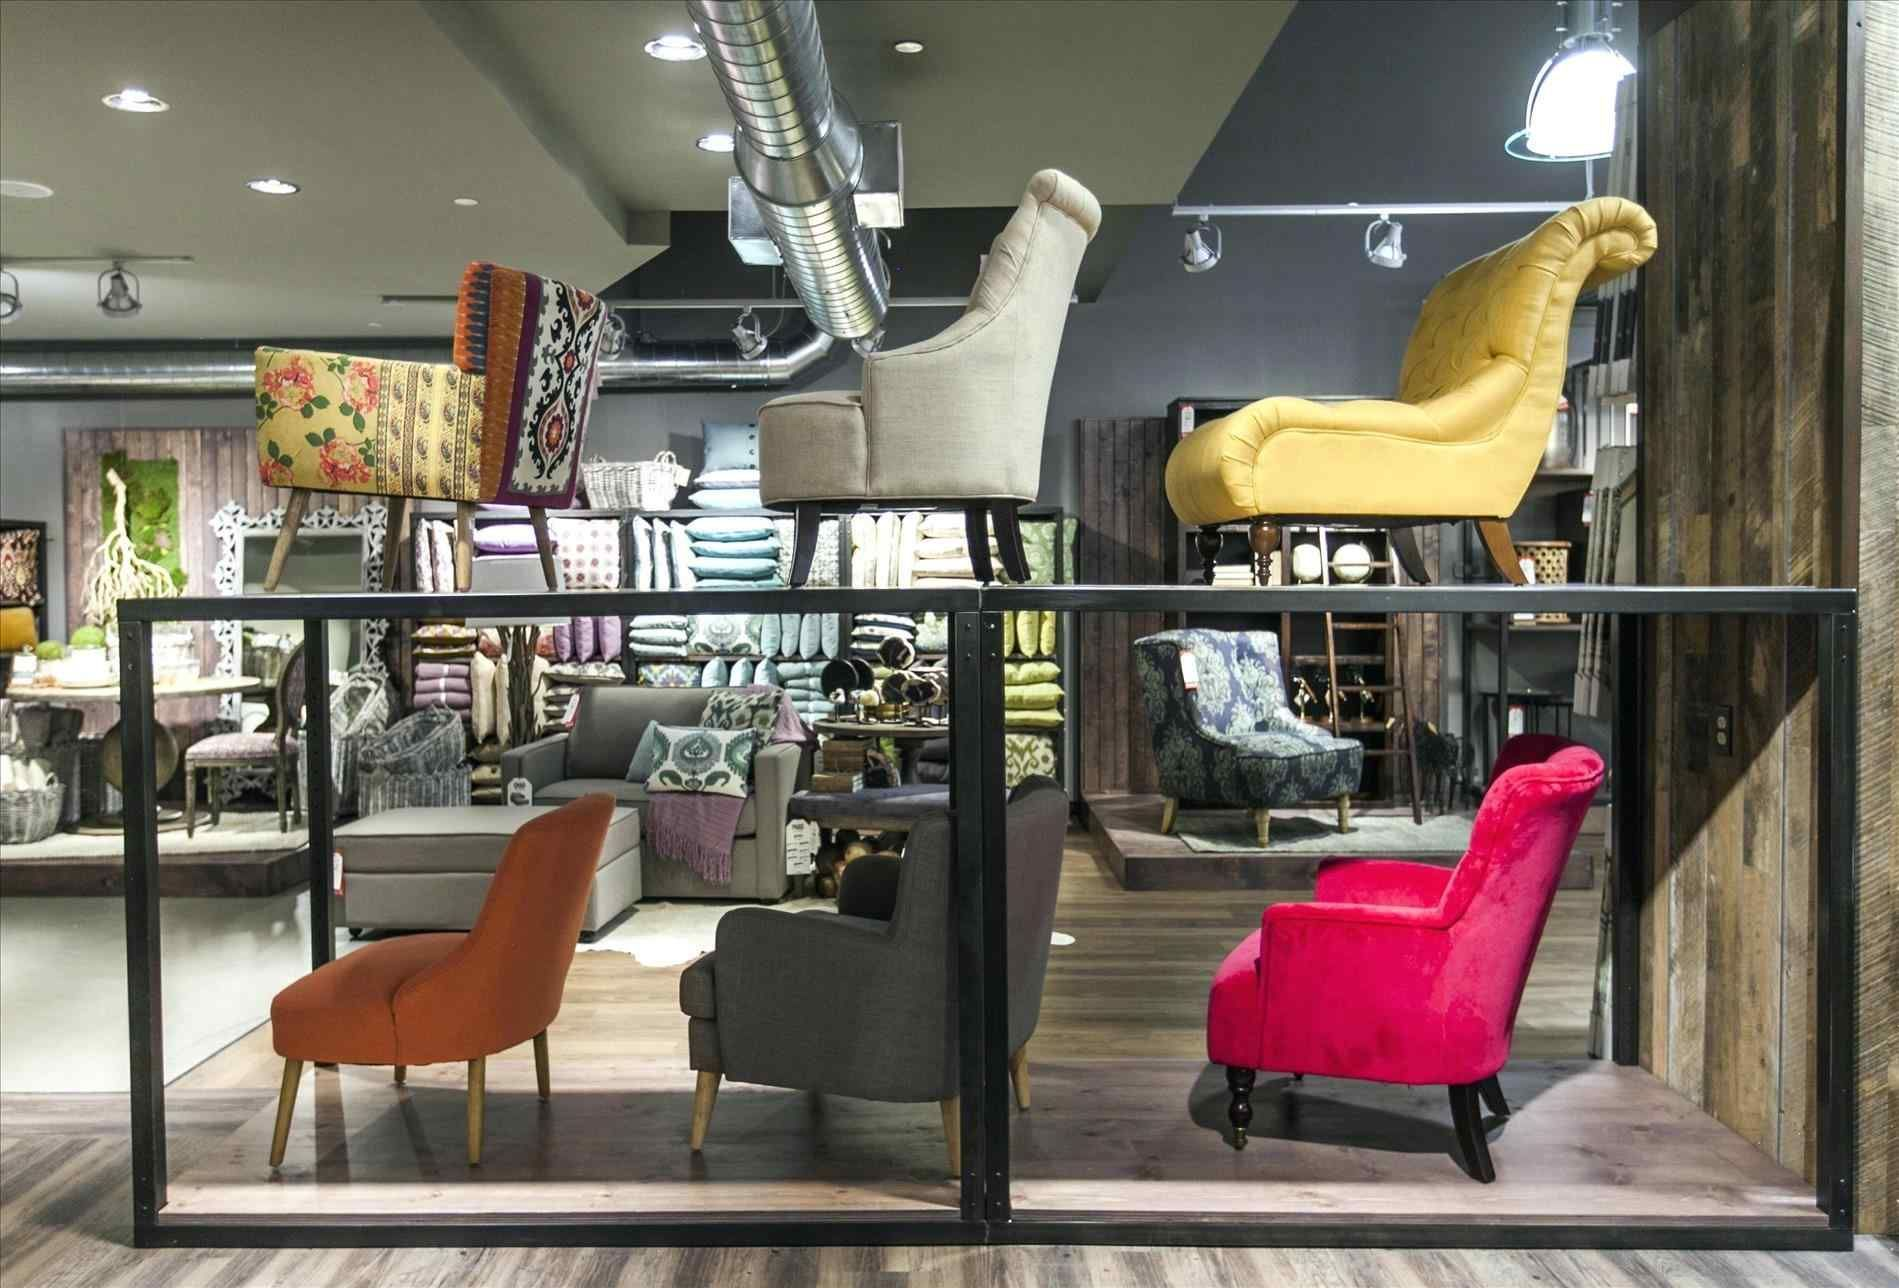 Furniture Stores Stores In Nyc Vintage Chelsea Shops Soho New York